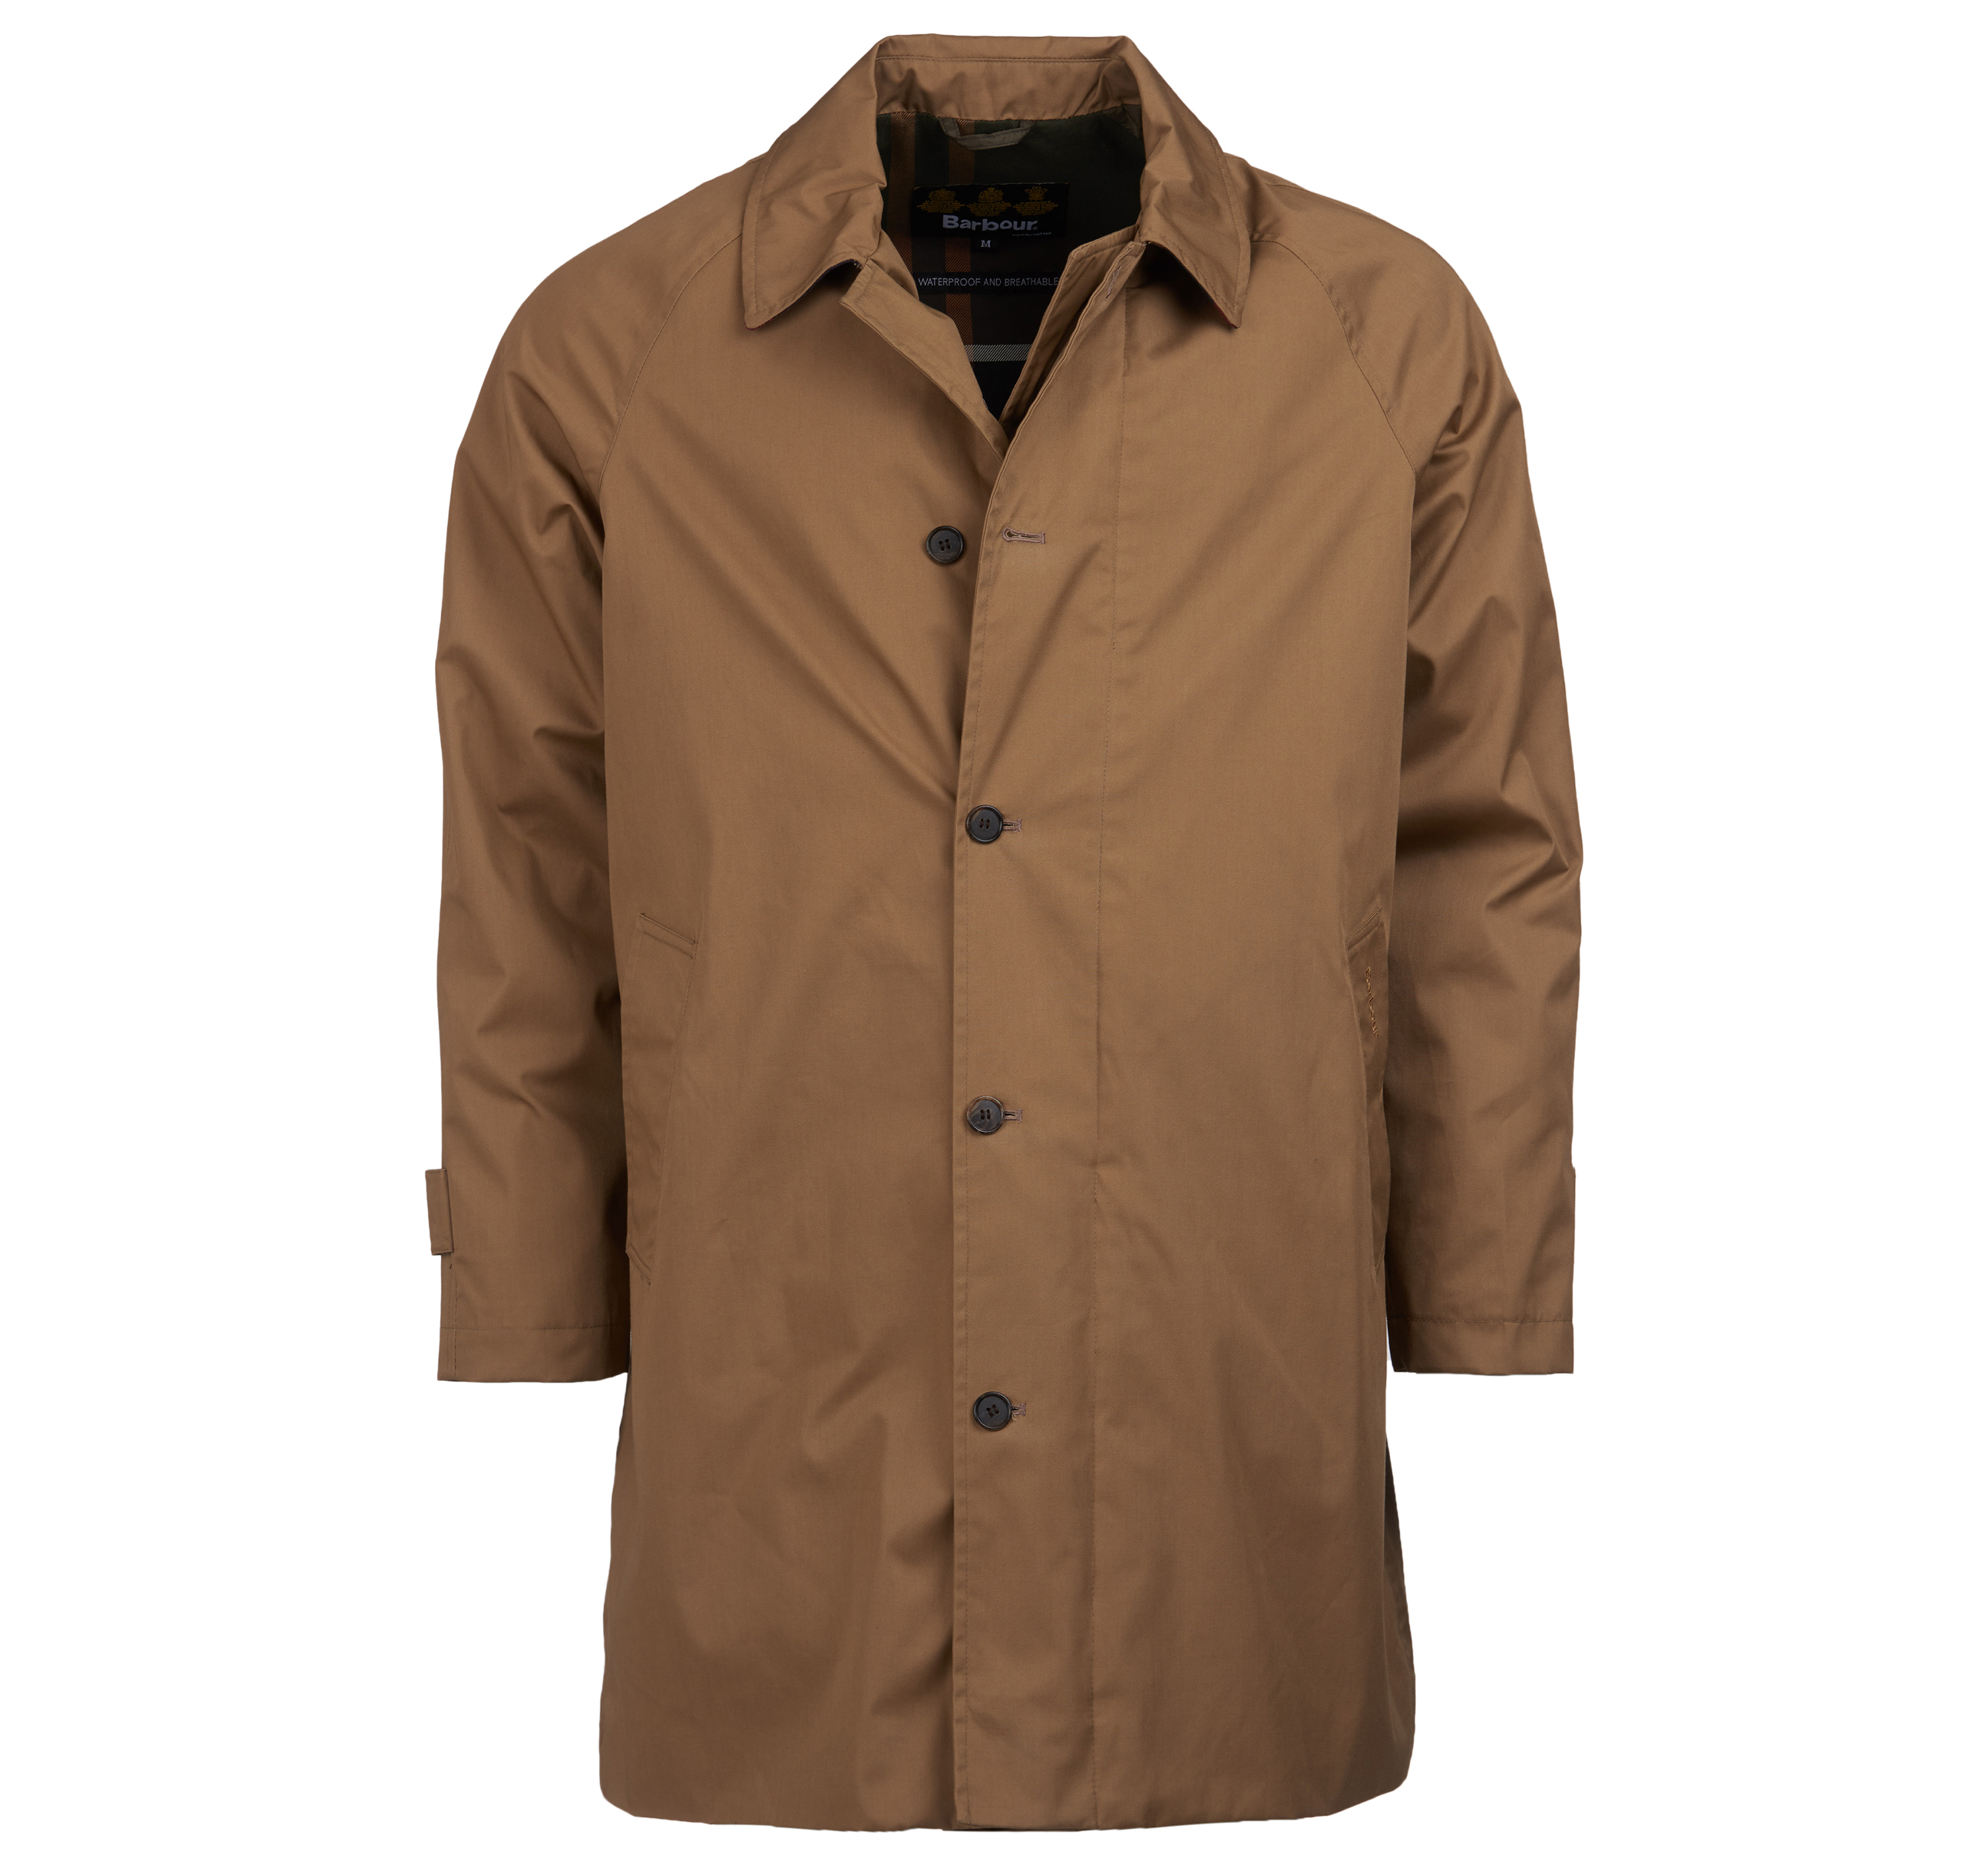 Barbour Maghill Waterproof Breathable Jacket Sandstone FIT: Tailored